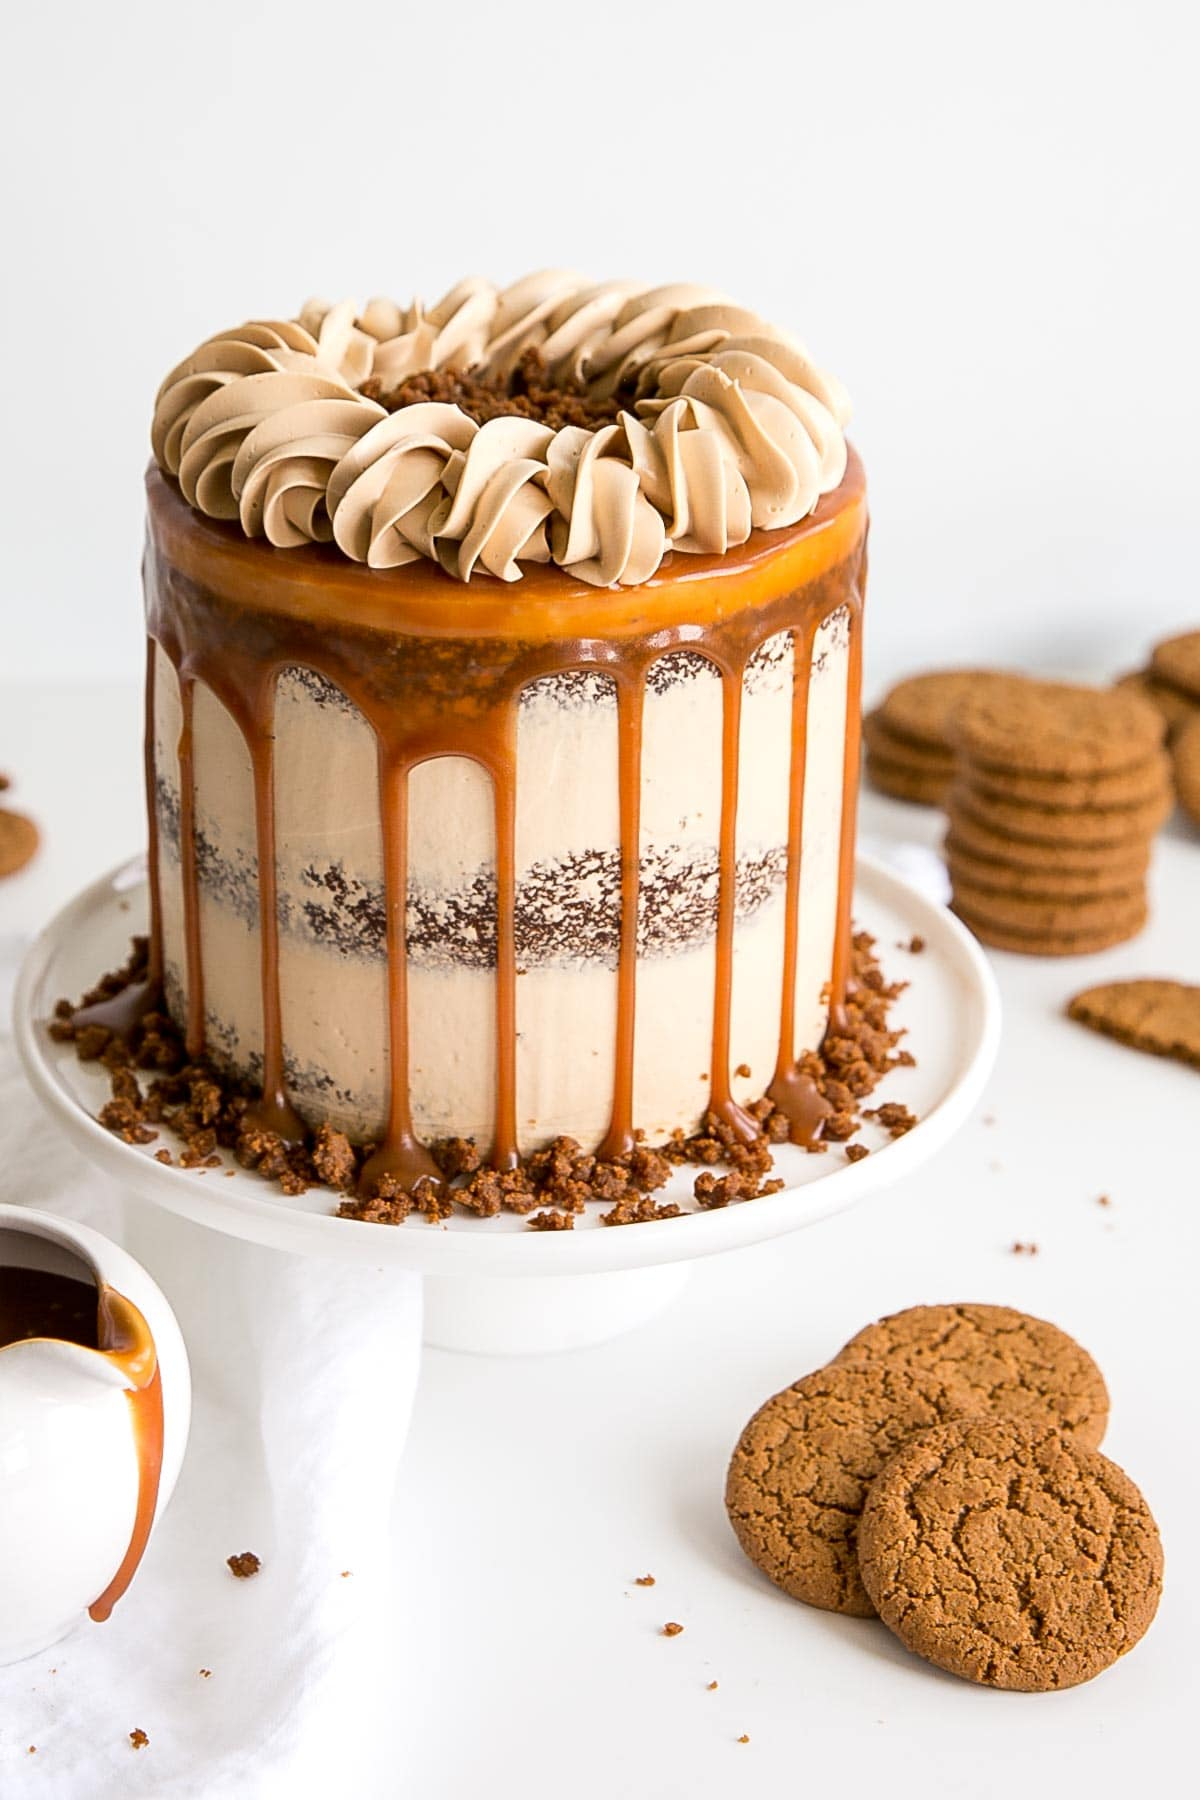 Caramel Gingerbread Cake decorated naked cake style with a caramel drip and rope border on top.